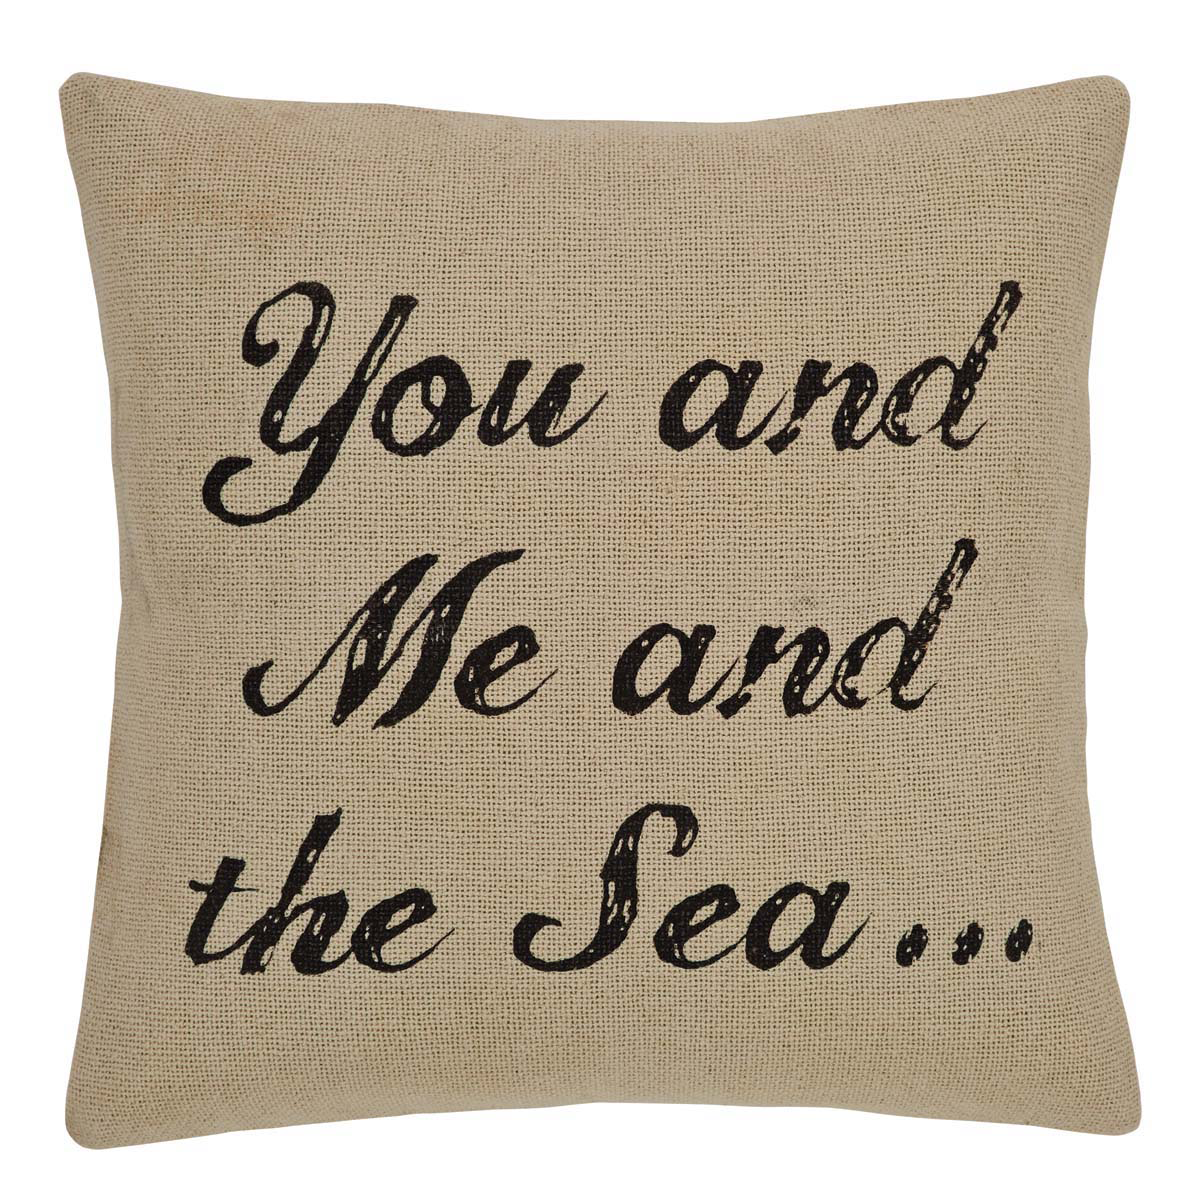 "You and Me and Sea Pillow w/Down Fill - 18""x18"" - VHC Brands - Country Nautical"